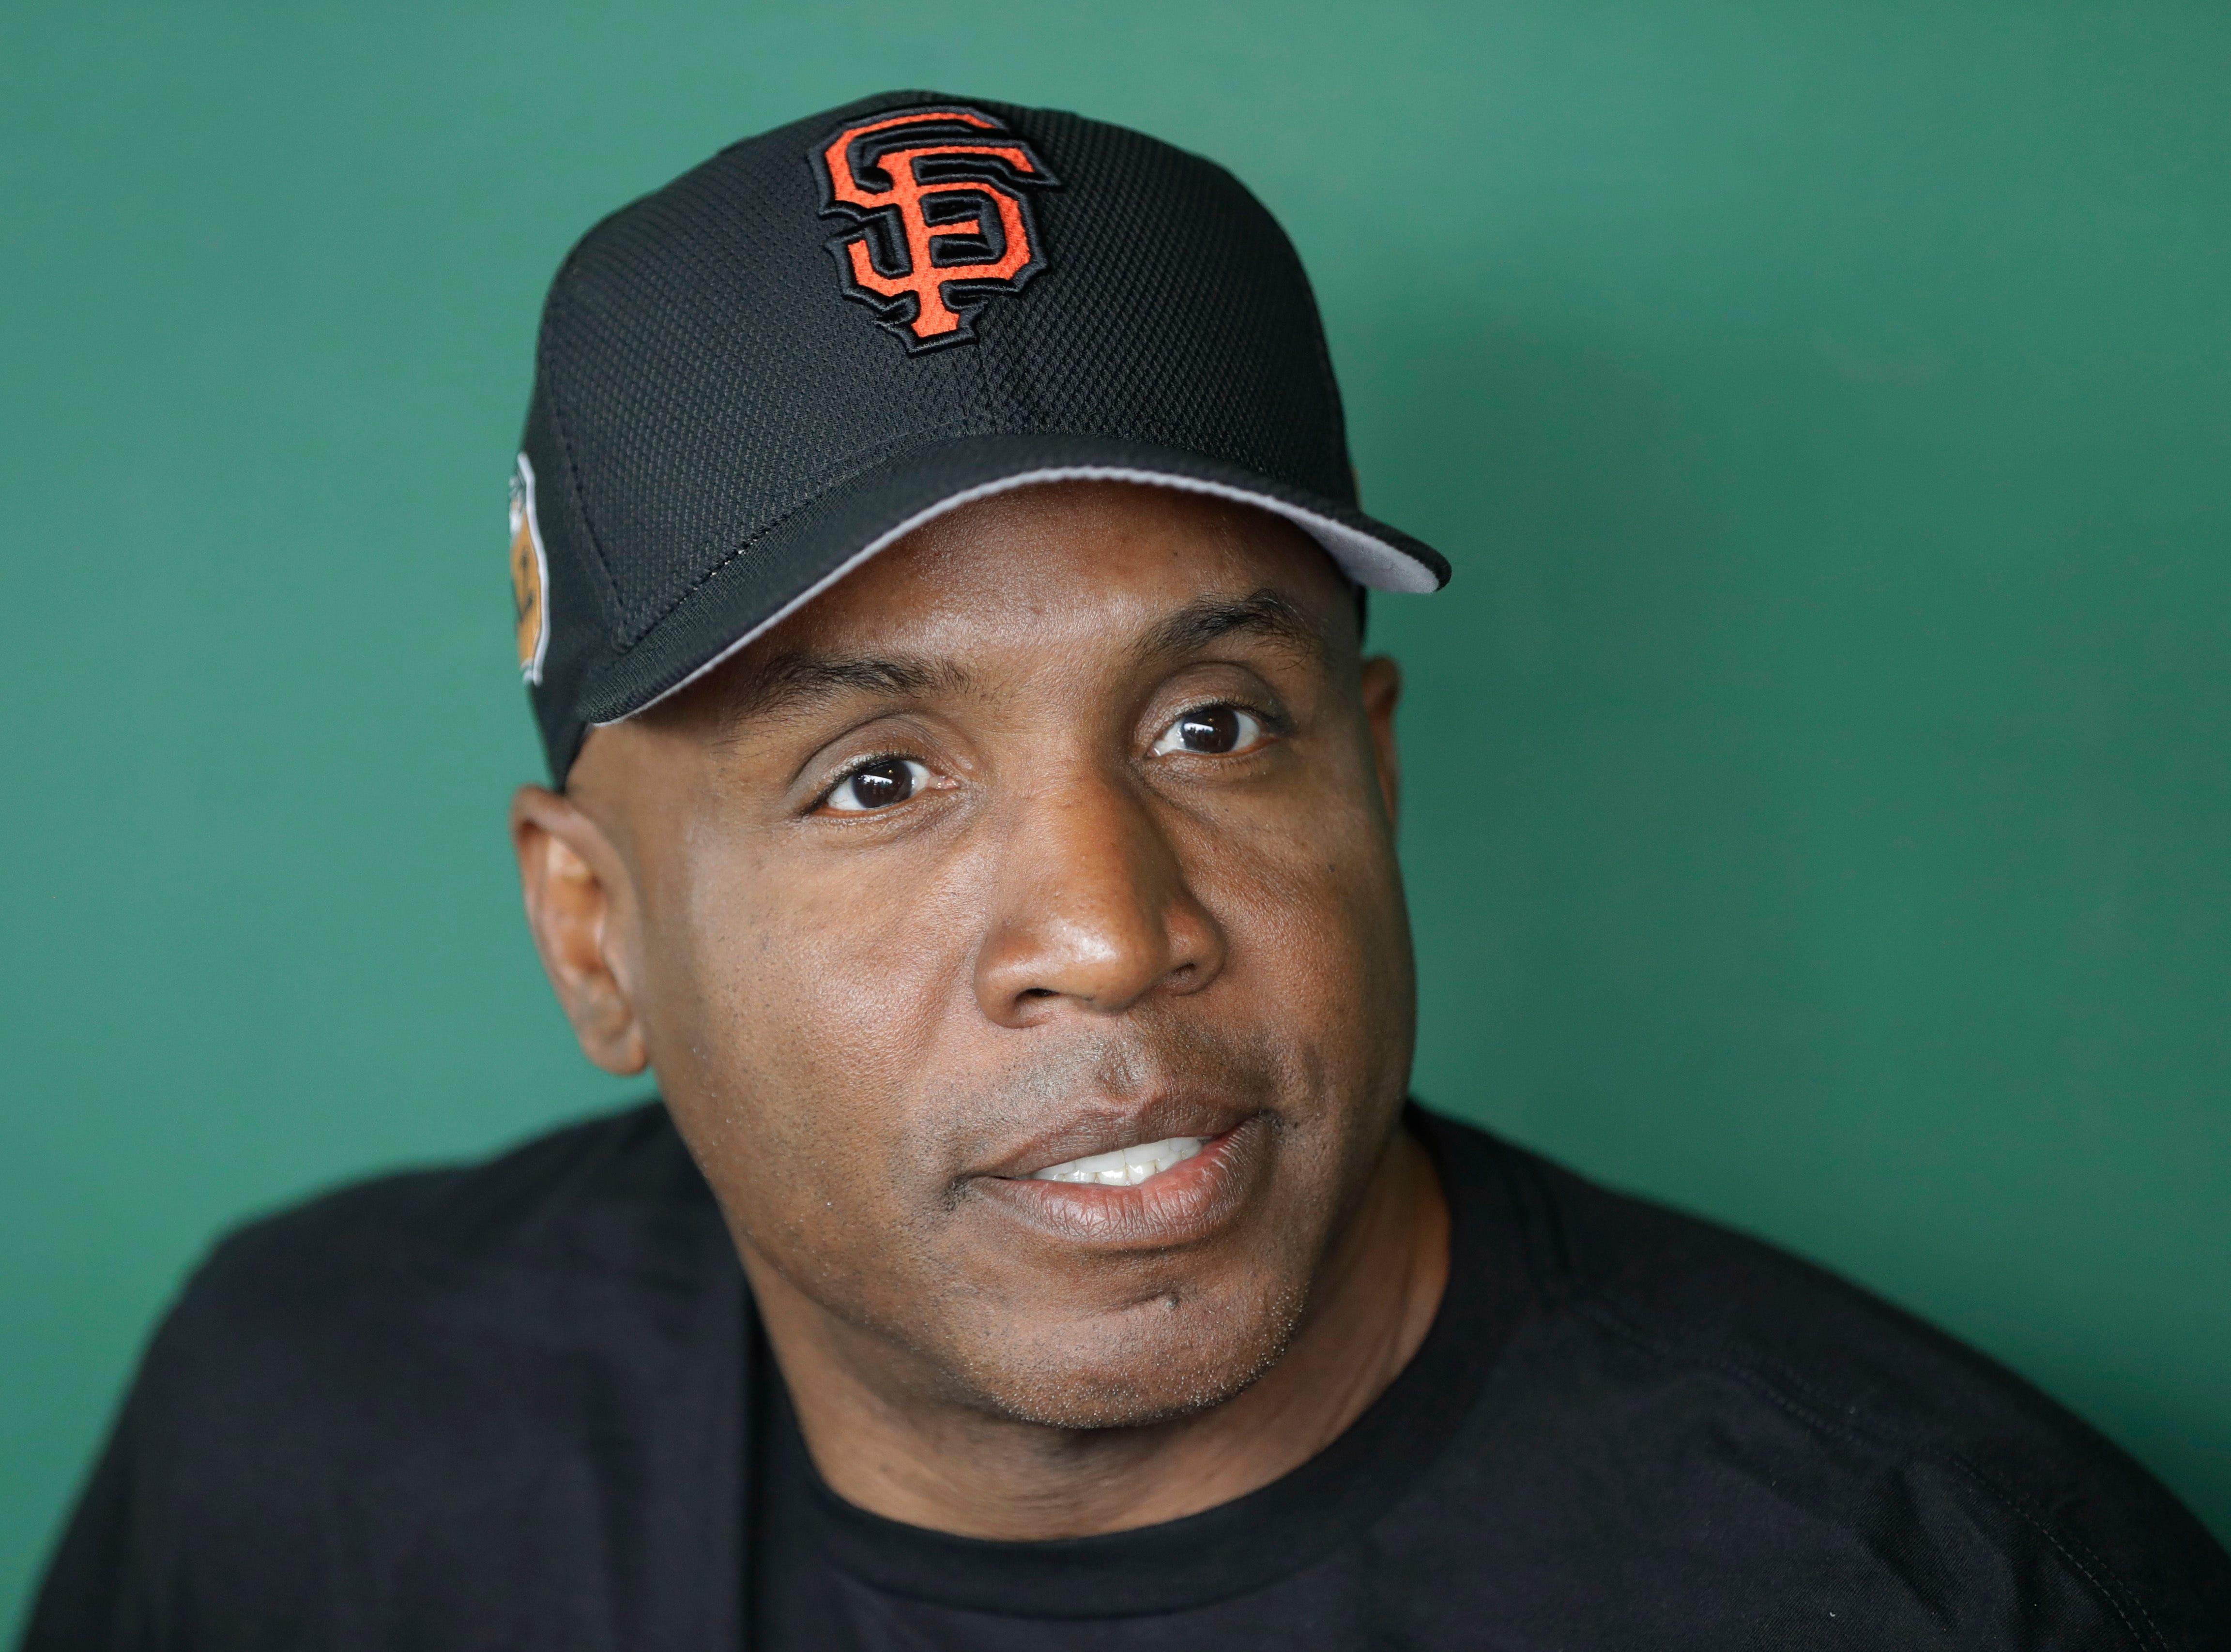 Barry Bonds' induction to Baseball Hall of Fame would mock Hank Aaron's untainted record